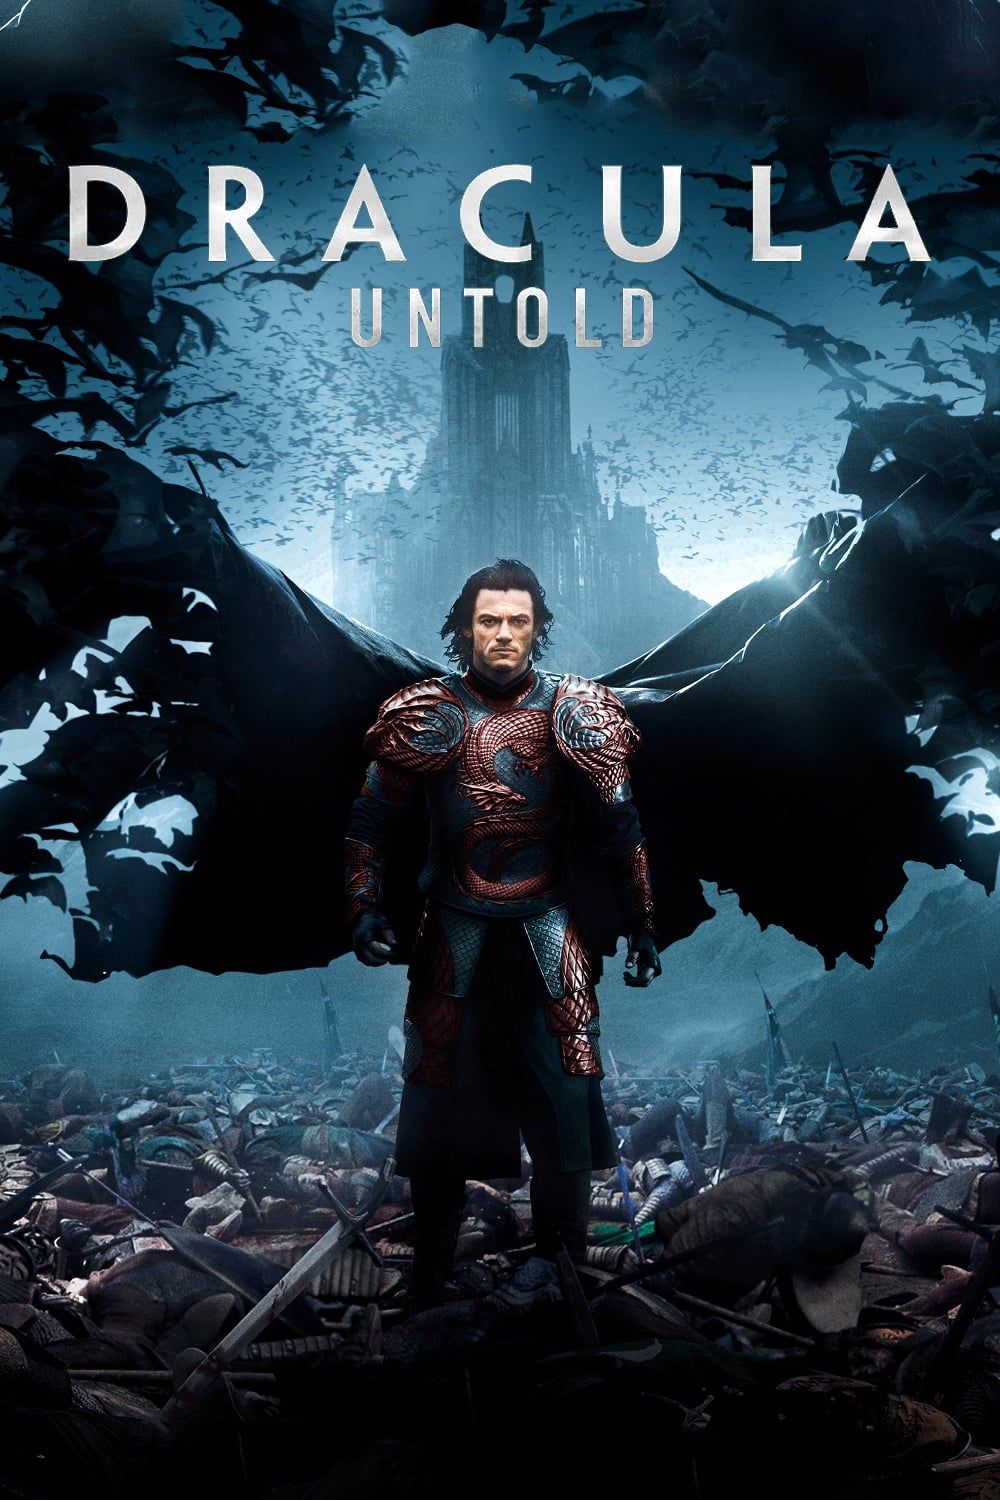 Dracula Untold (2014) 1080p BluRay ESubs Dual Audio [Hindi+English] 4.00GB Download